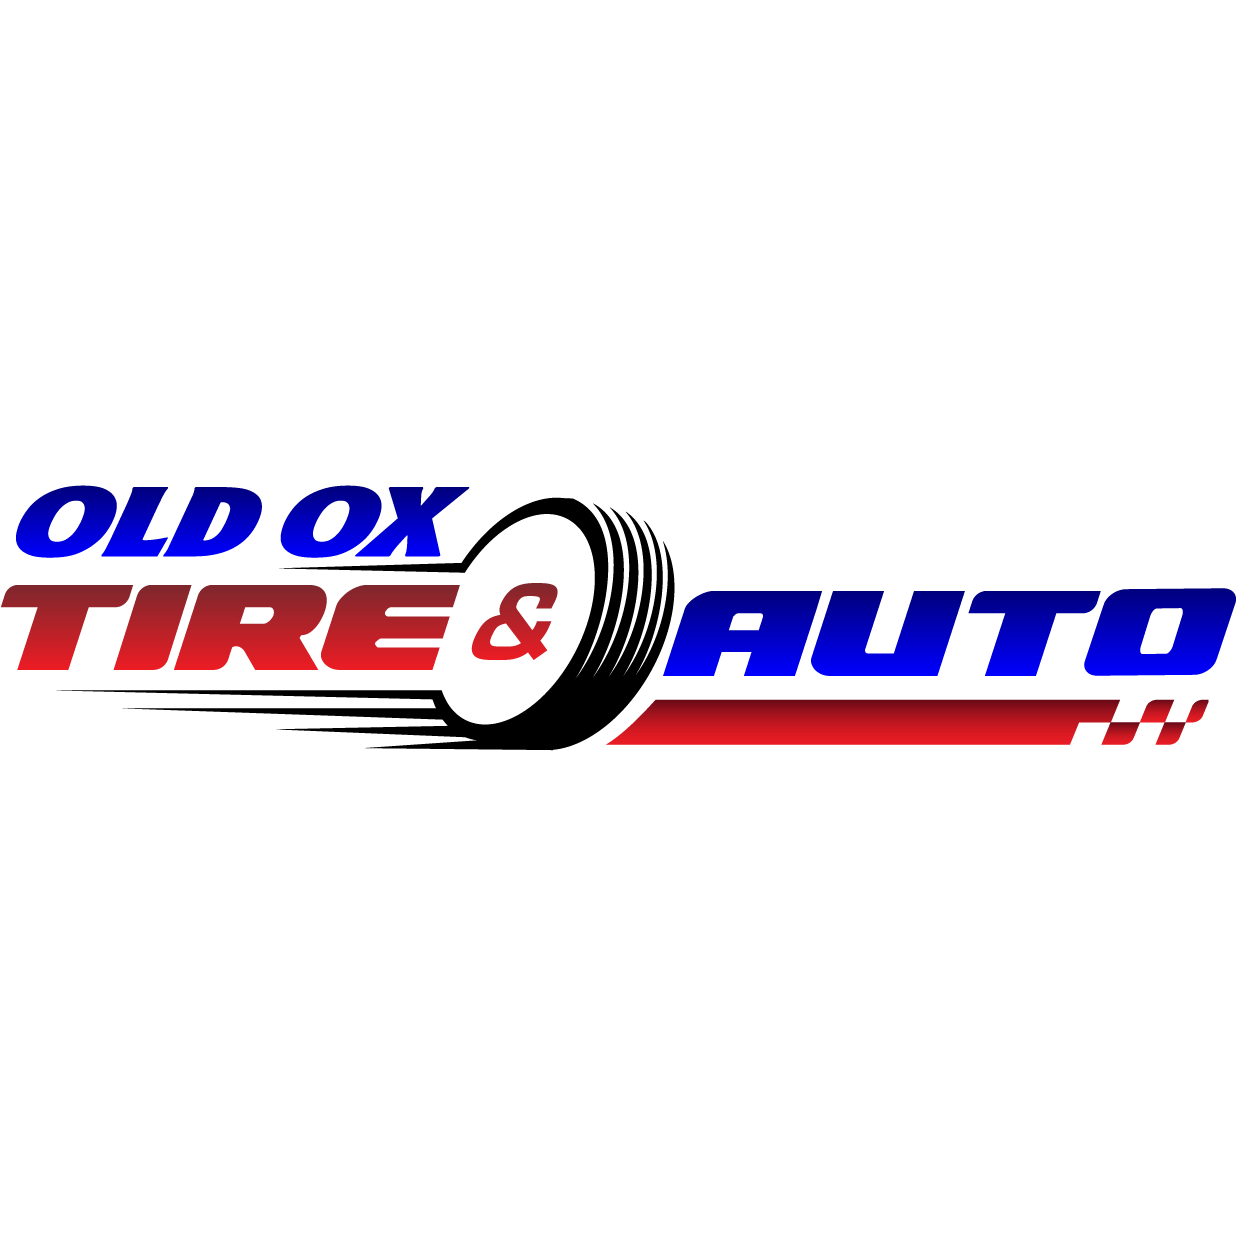 Old Ox Tire & Auto